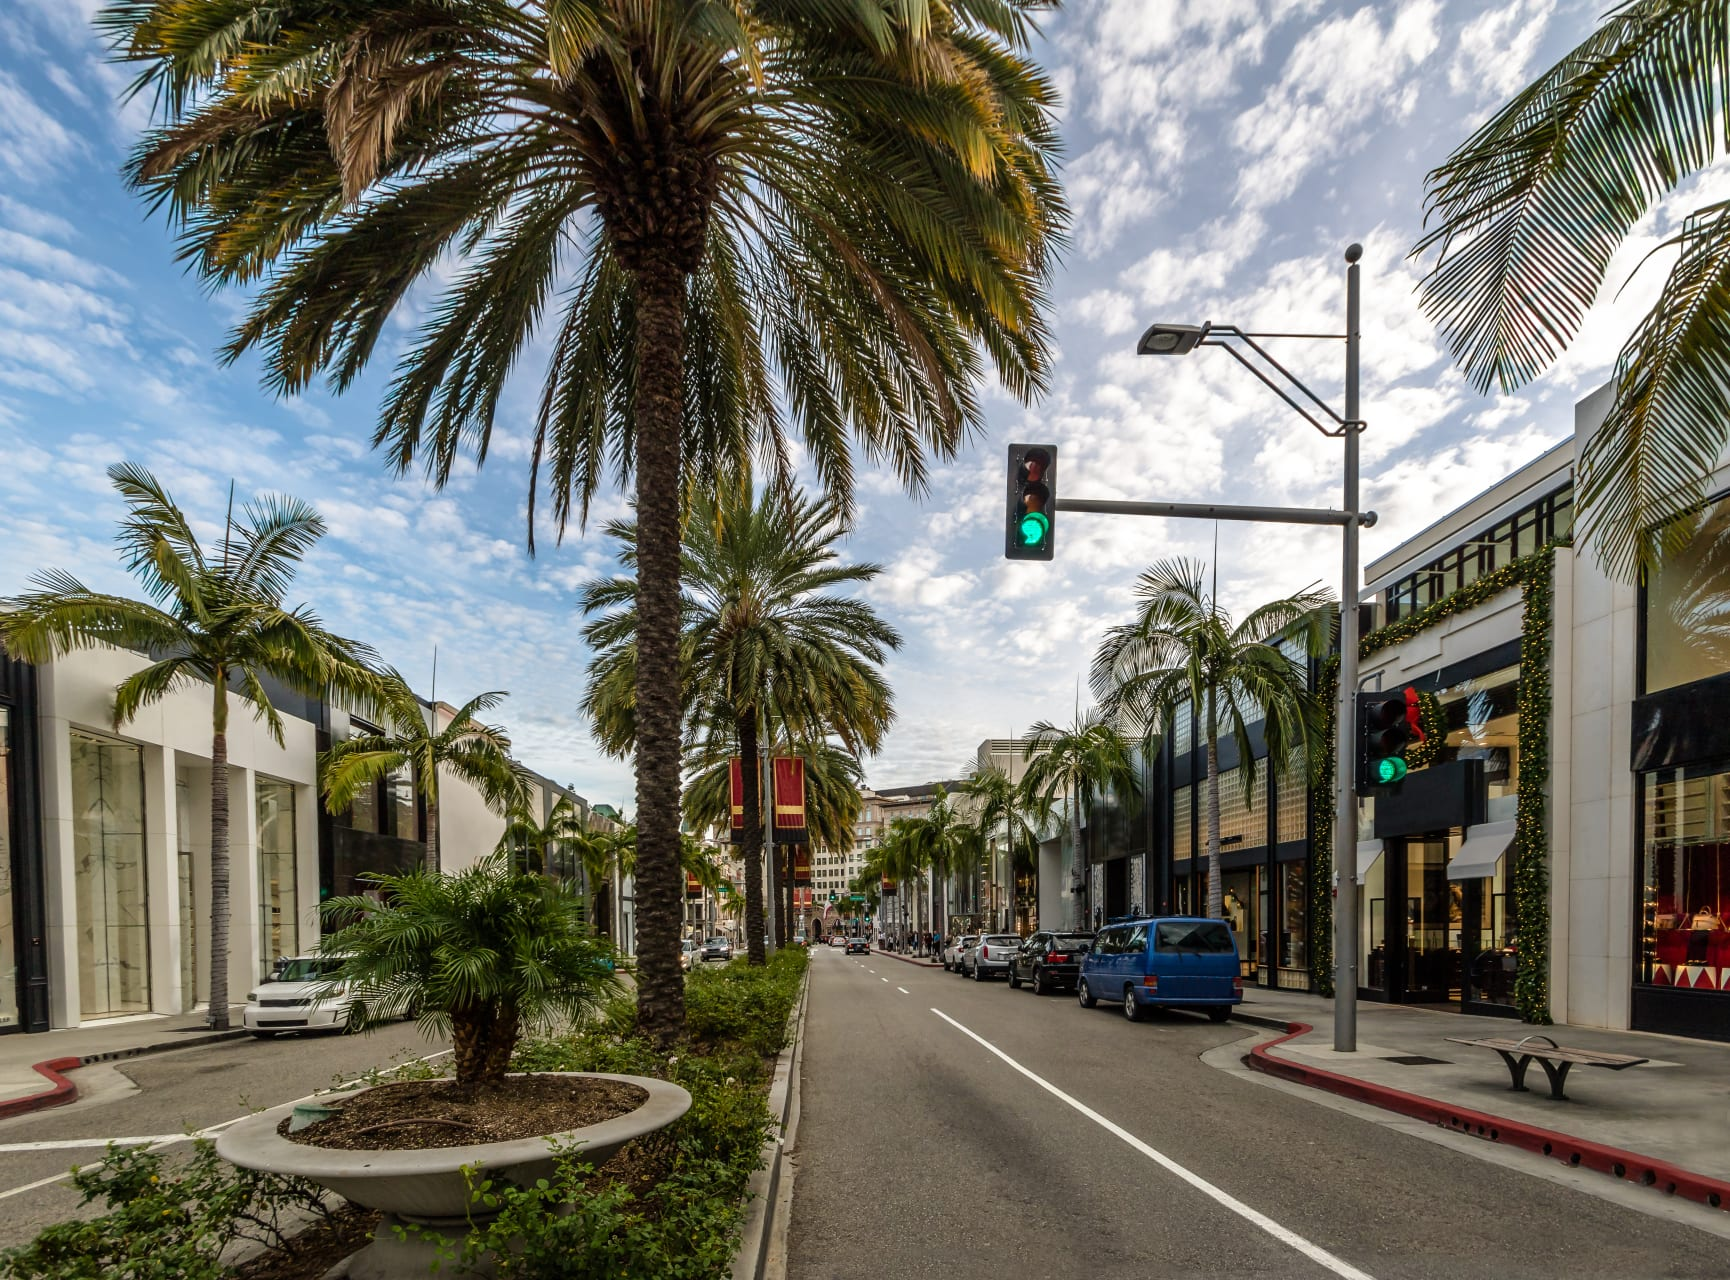 Los Angeles - Glitter and Glamour on Rodeo Drive Beverly Hills.